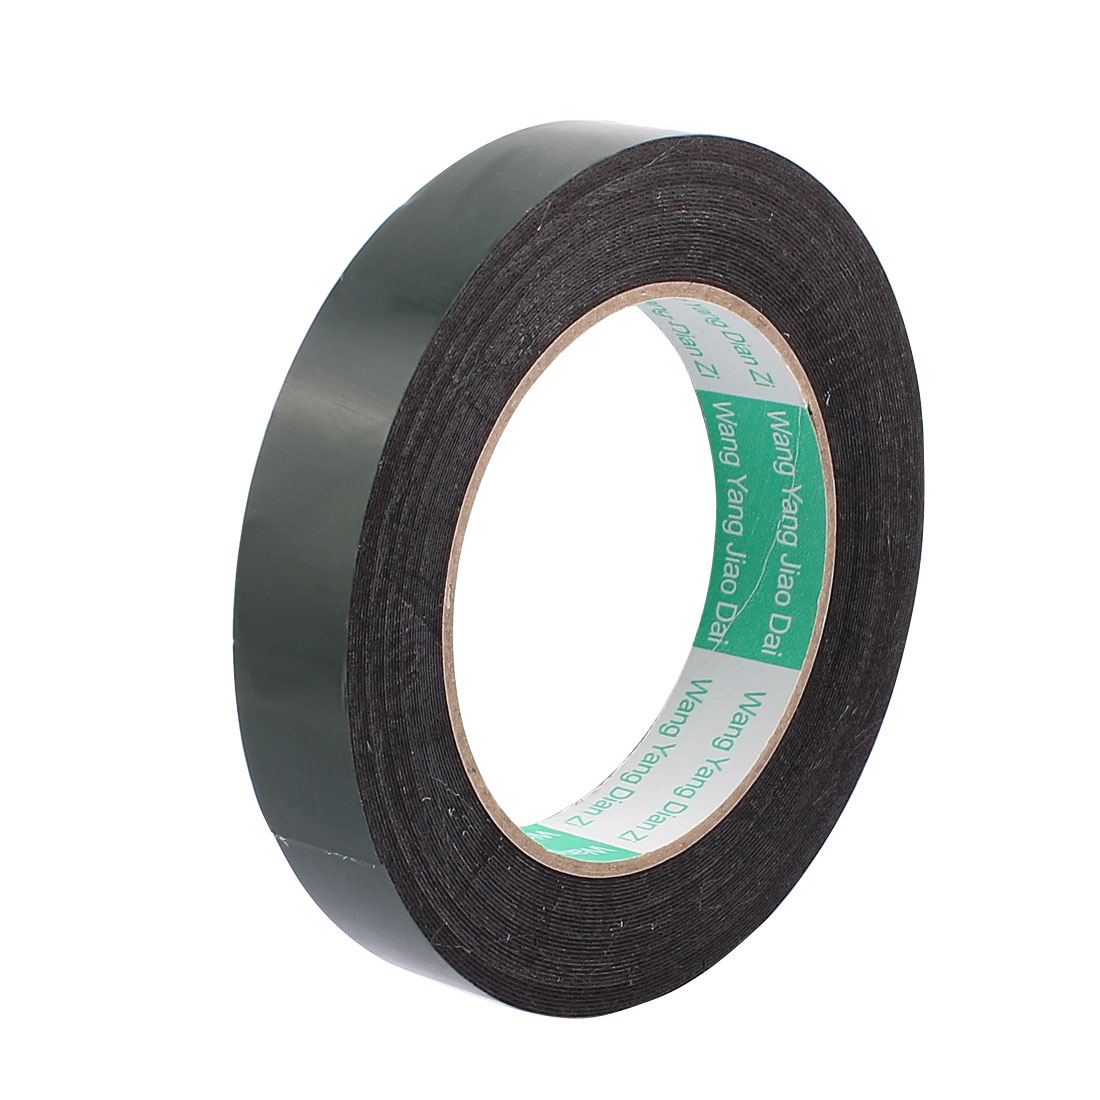 2CM Width 10M Length 0.5MM Thick Dual Sided Sealing Shockproof Sponge Tape